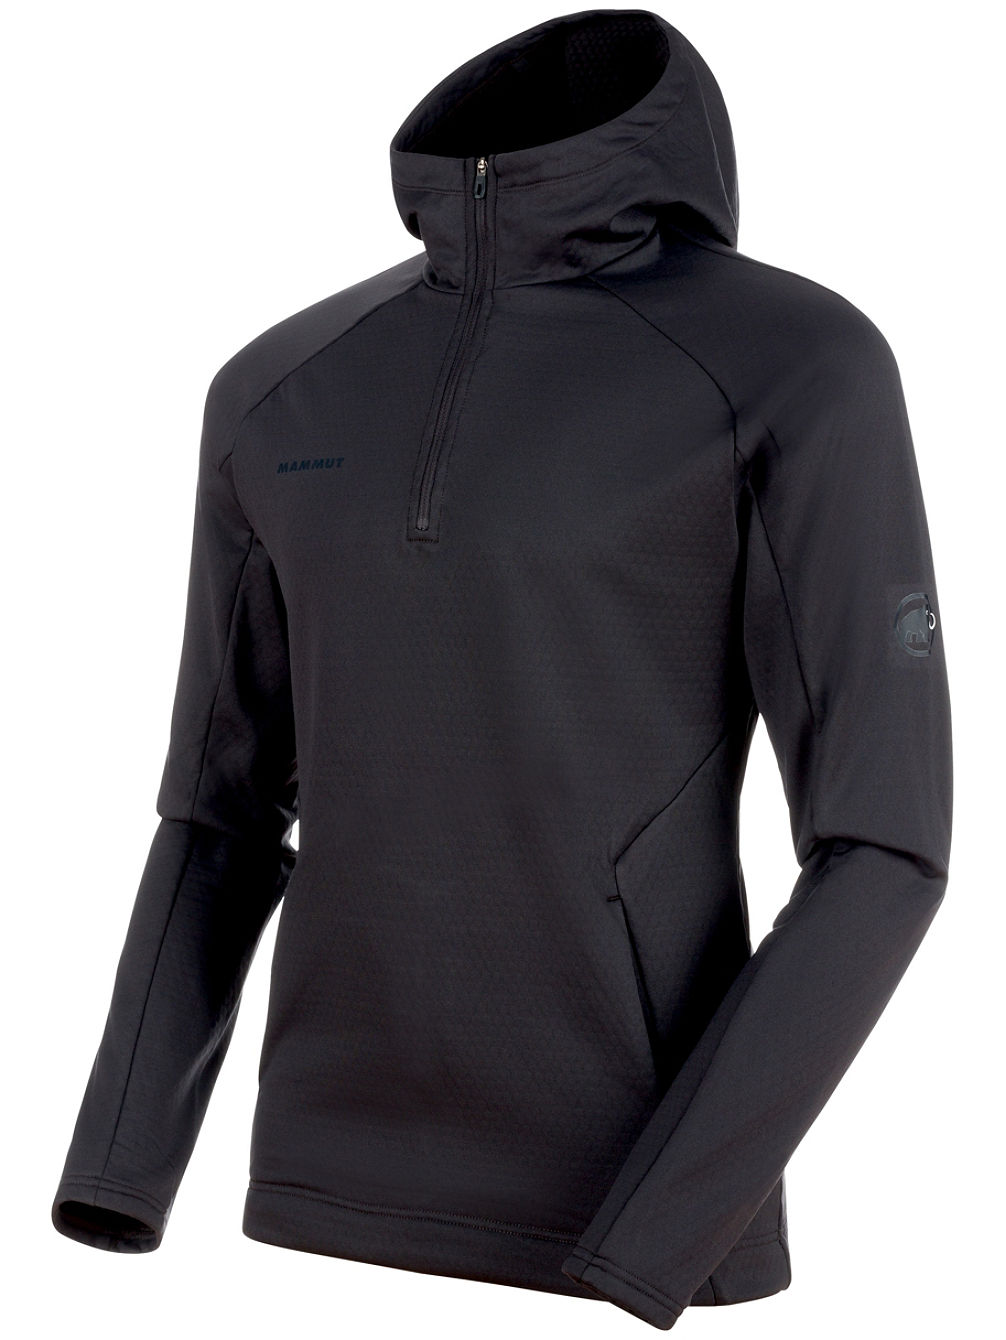 Runbold Hooded Fleece Pullover